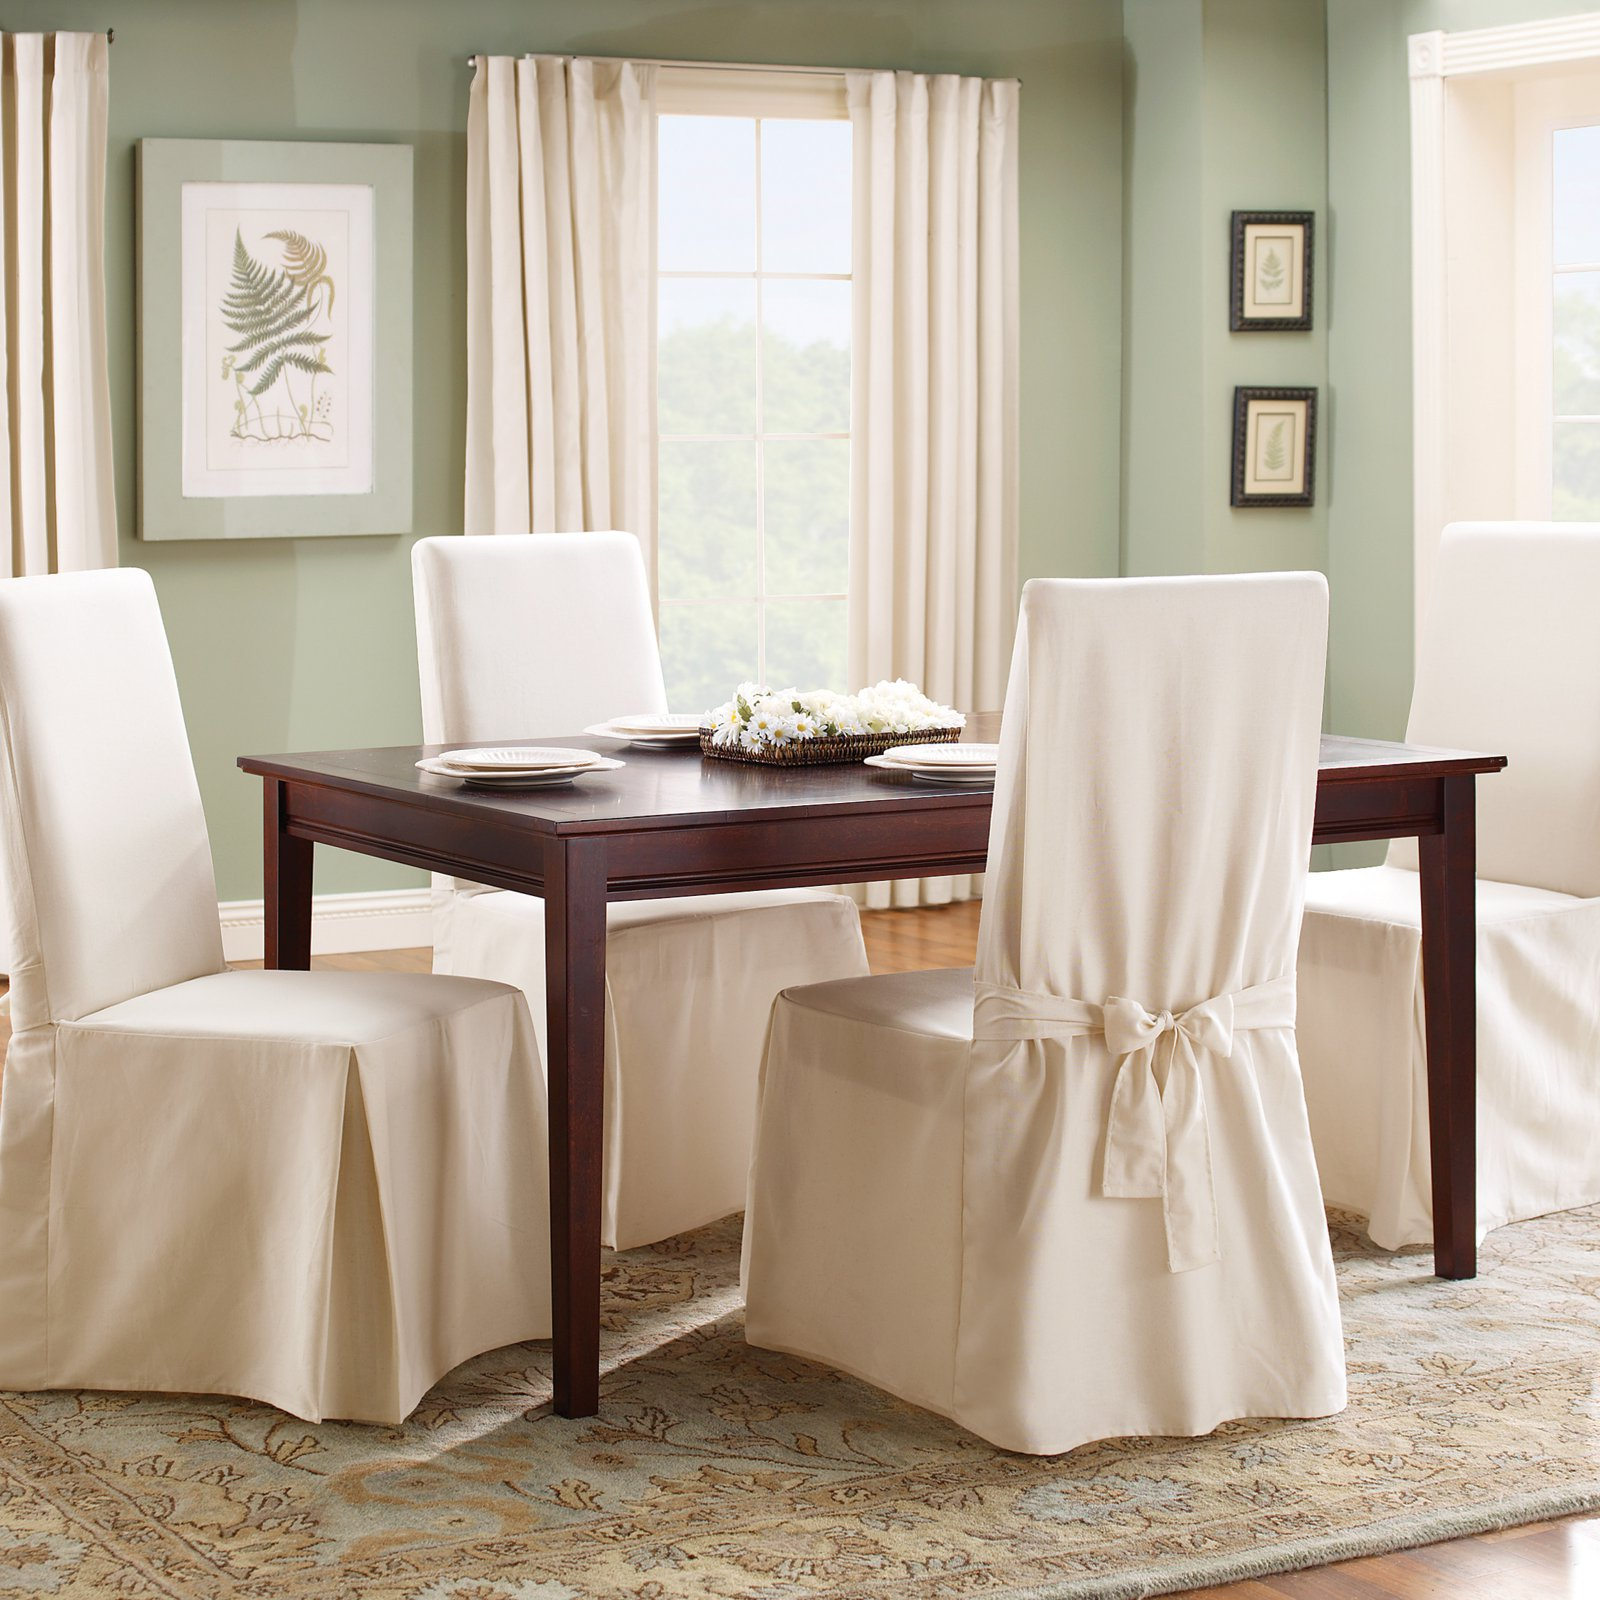 Dining Room Chair Slipcovers Cheap sure fit cotton duck dining chair slipcover - walmart